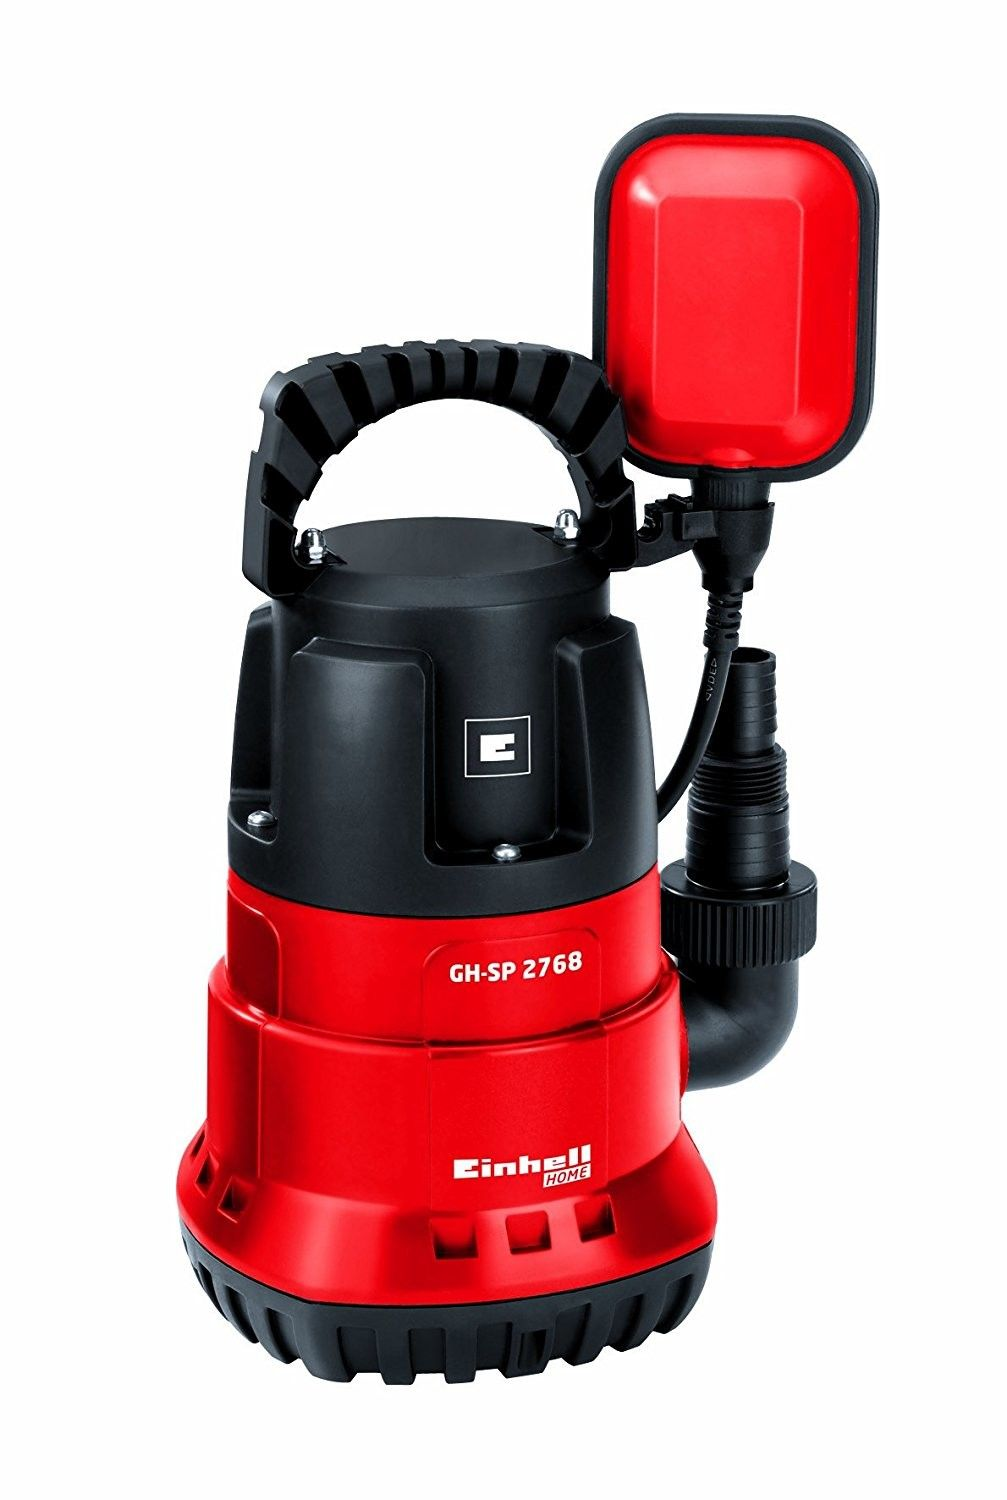 Pompa ad Immersione, 270 W, 6.800 L/H GH-SP 2768 EINHELL 4170442